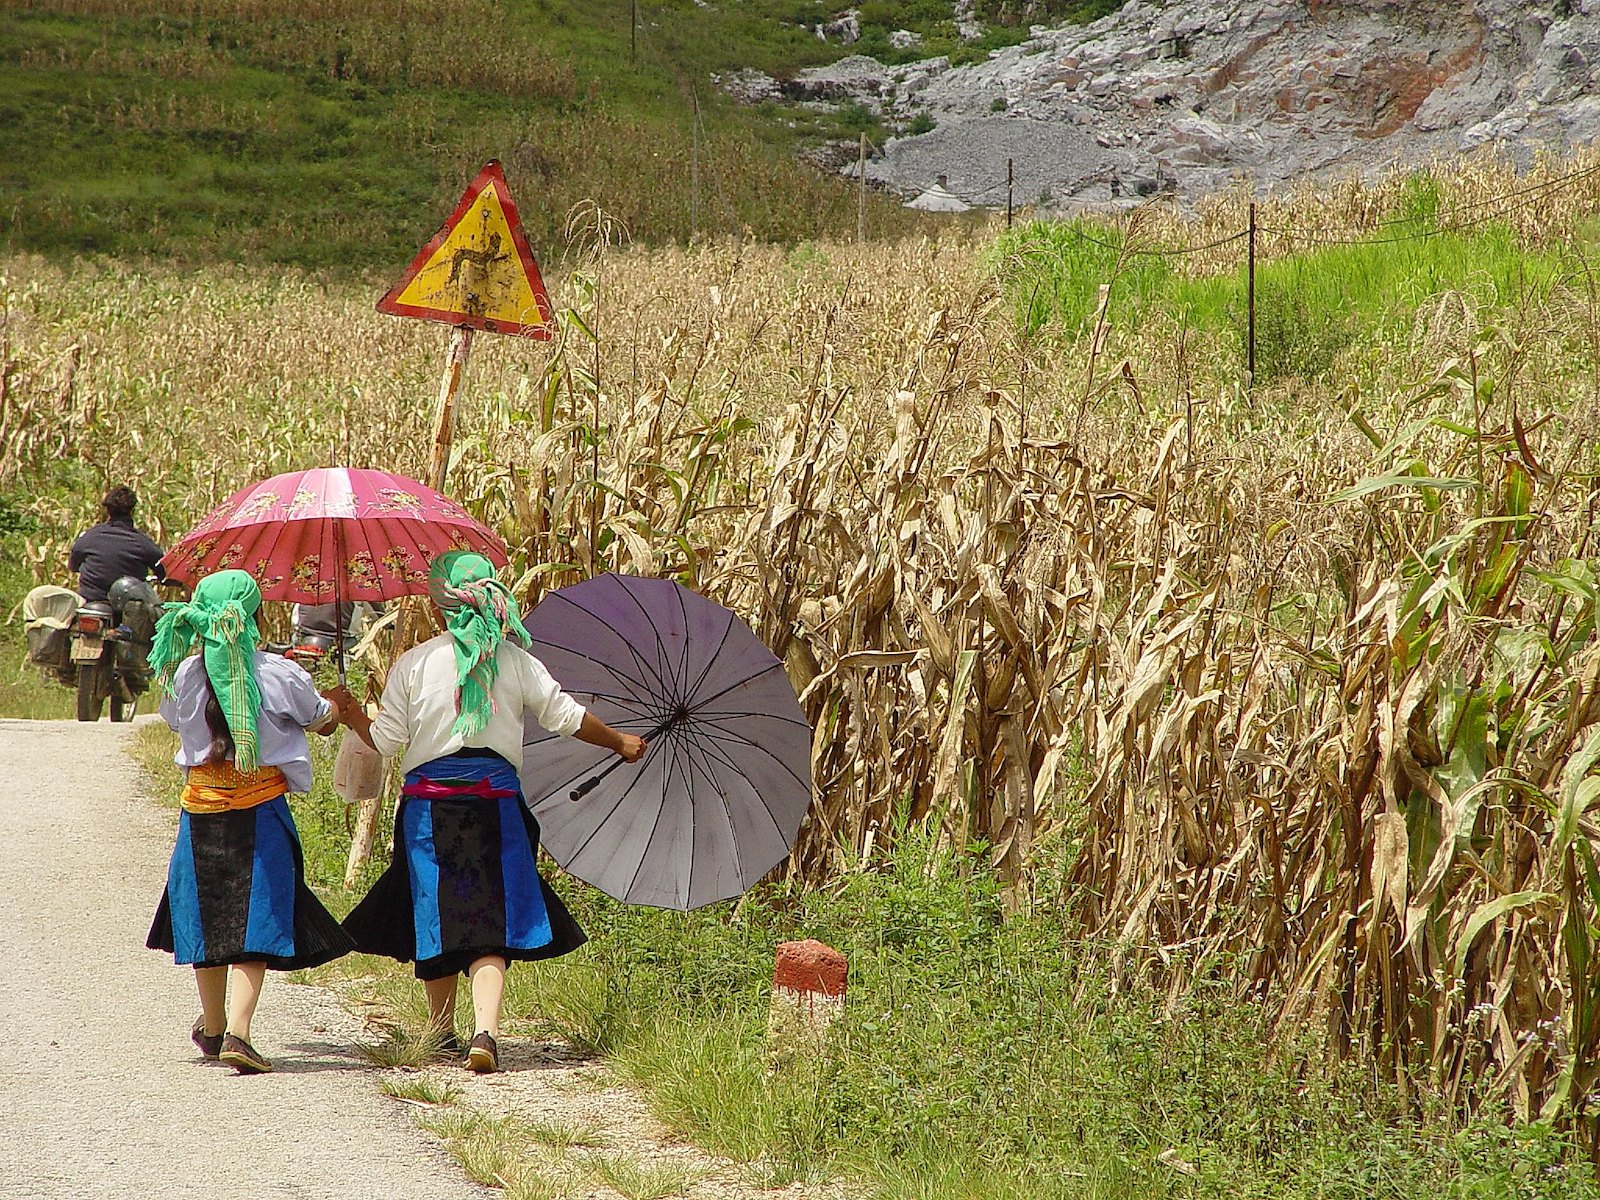 Image of Hmong girls leaving the market in Meo Vac, Vietnam